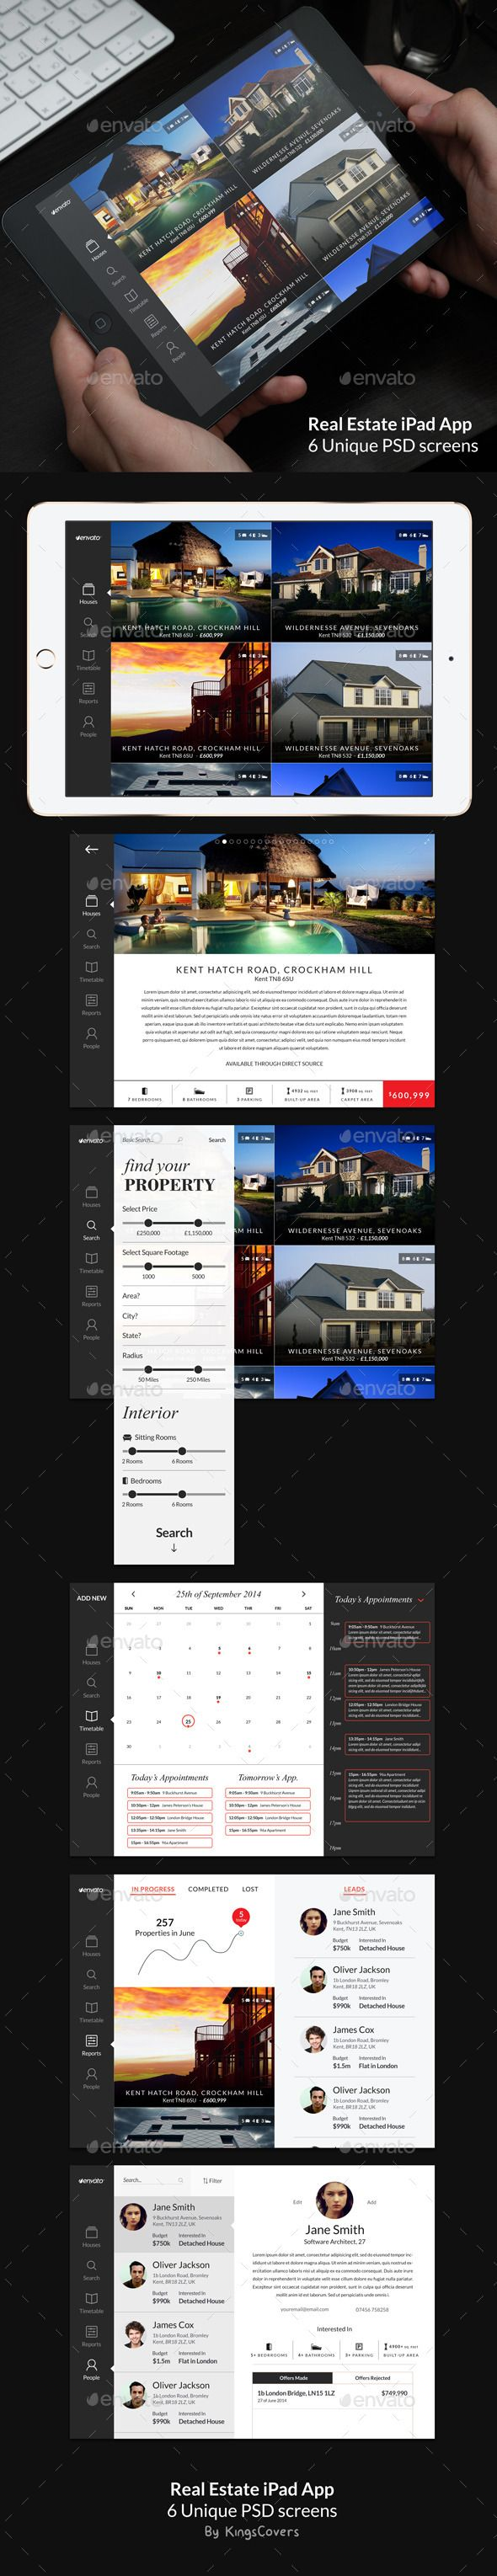 Real Estate iPad App UI #design Download: http://graphicriver.net/item/real-estate-ipad-app/10729854?ref=ksioks